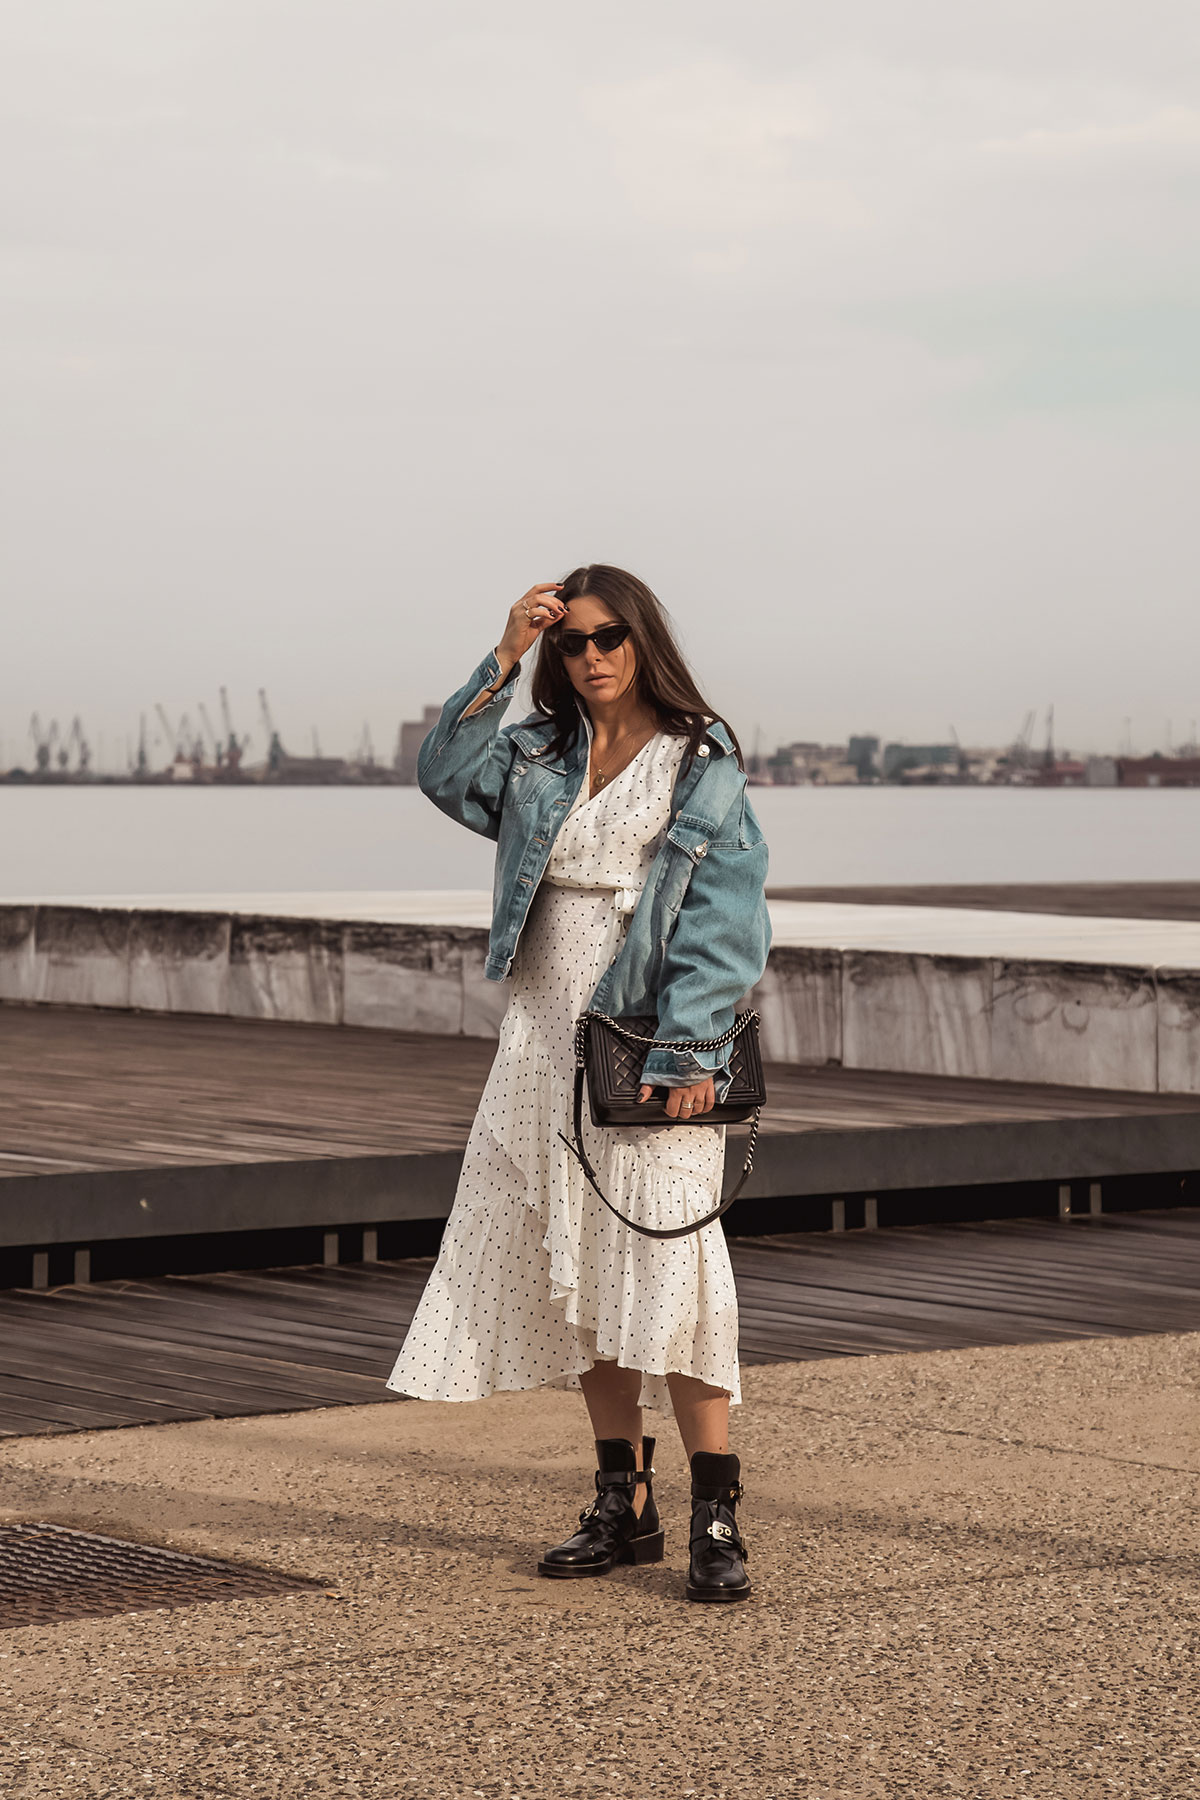 polka dot dress with edgy boots and denim jacket by Stella Asteria - Fashion & Lifestyle Blogger